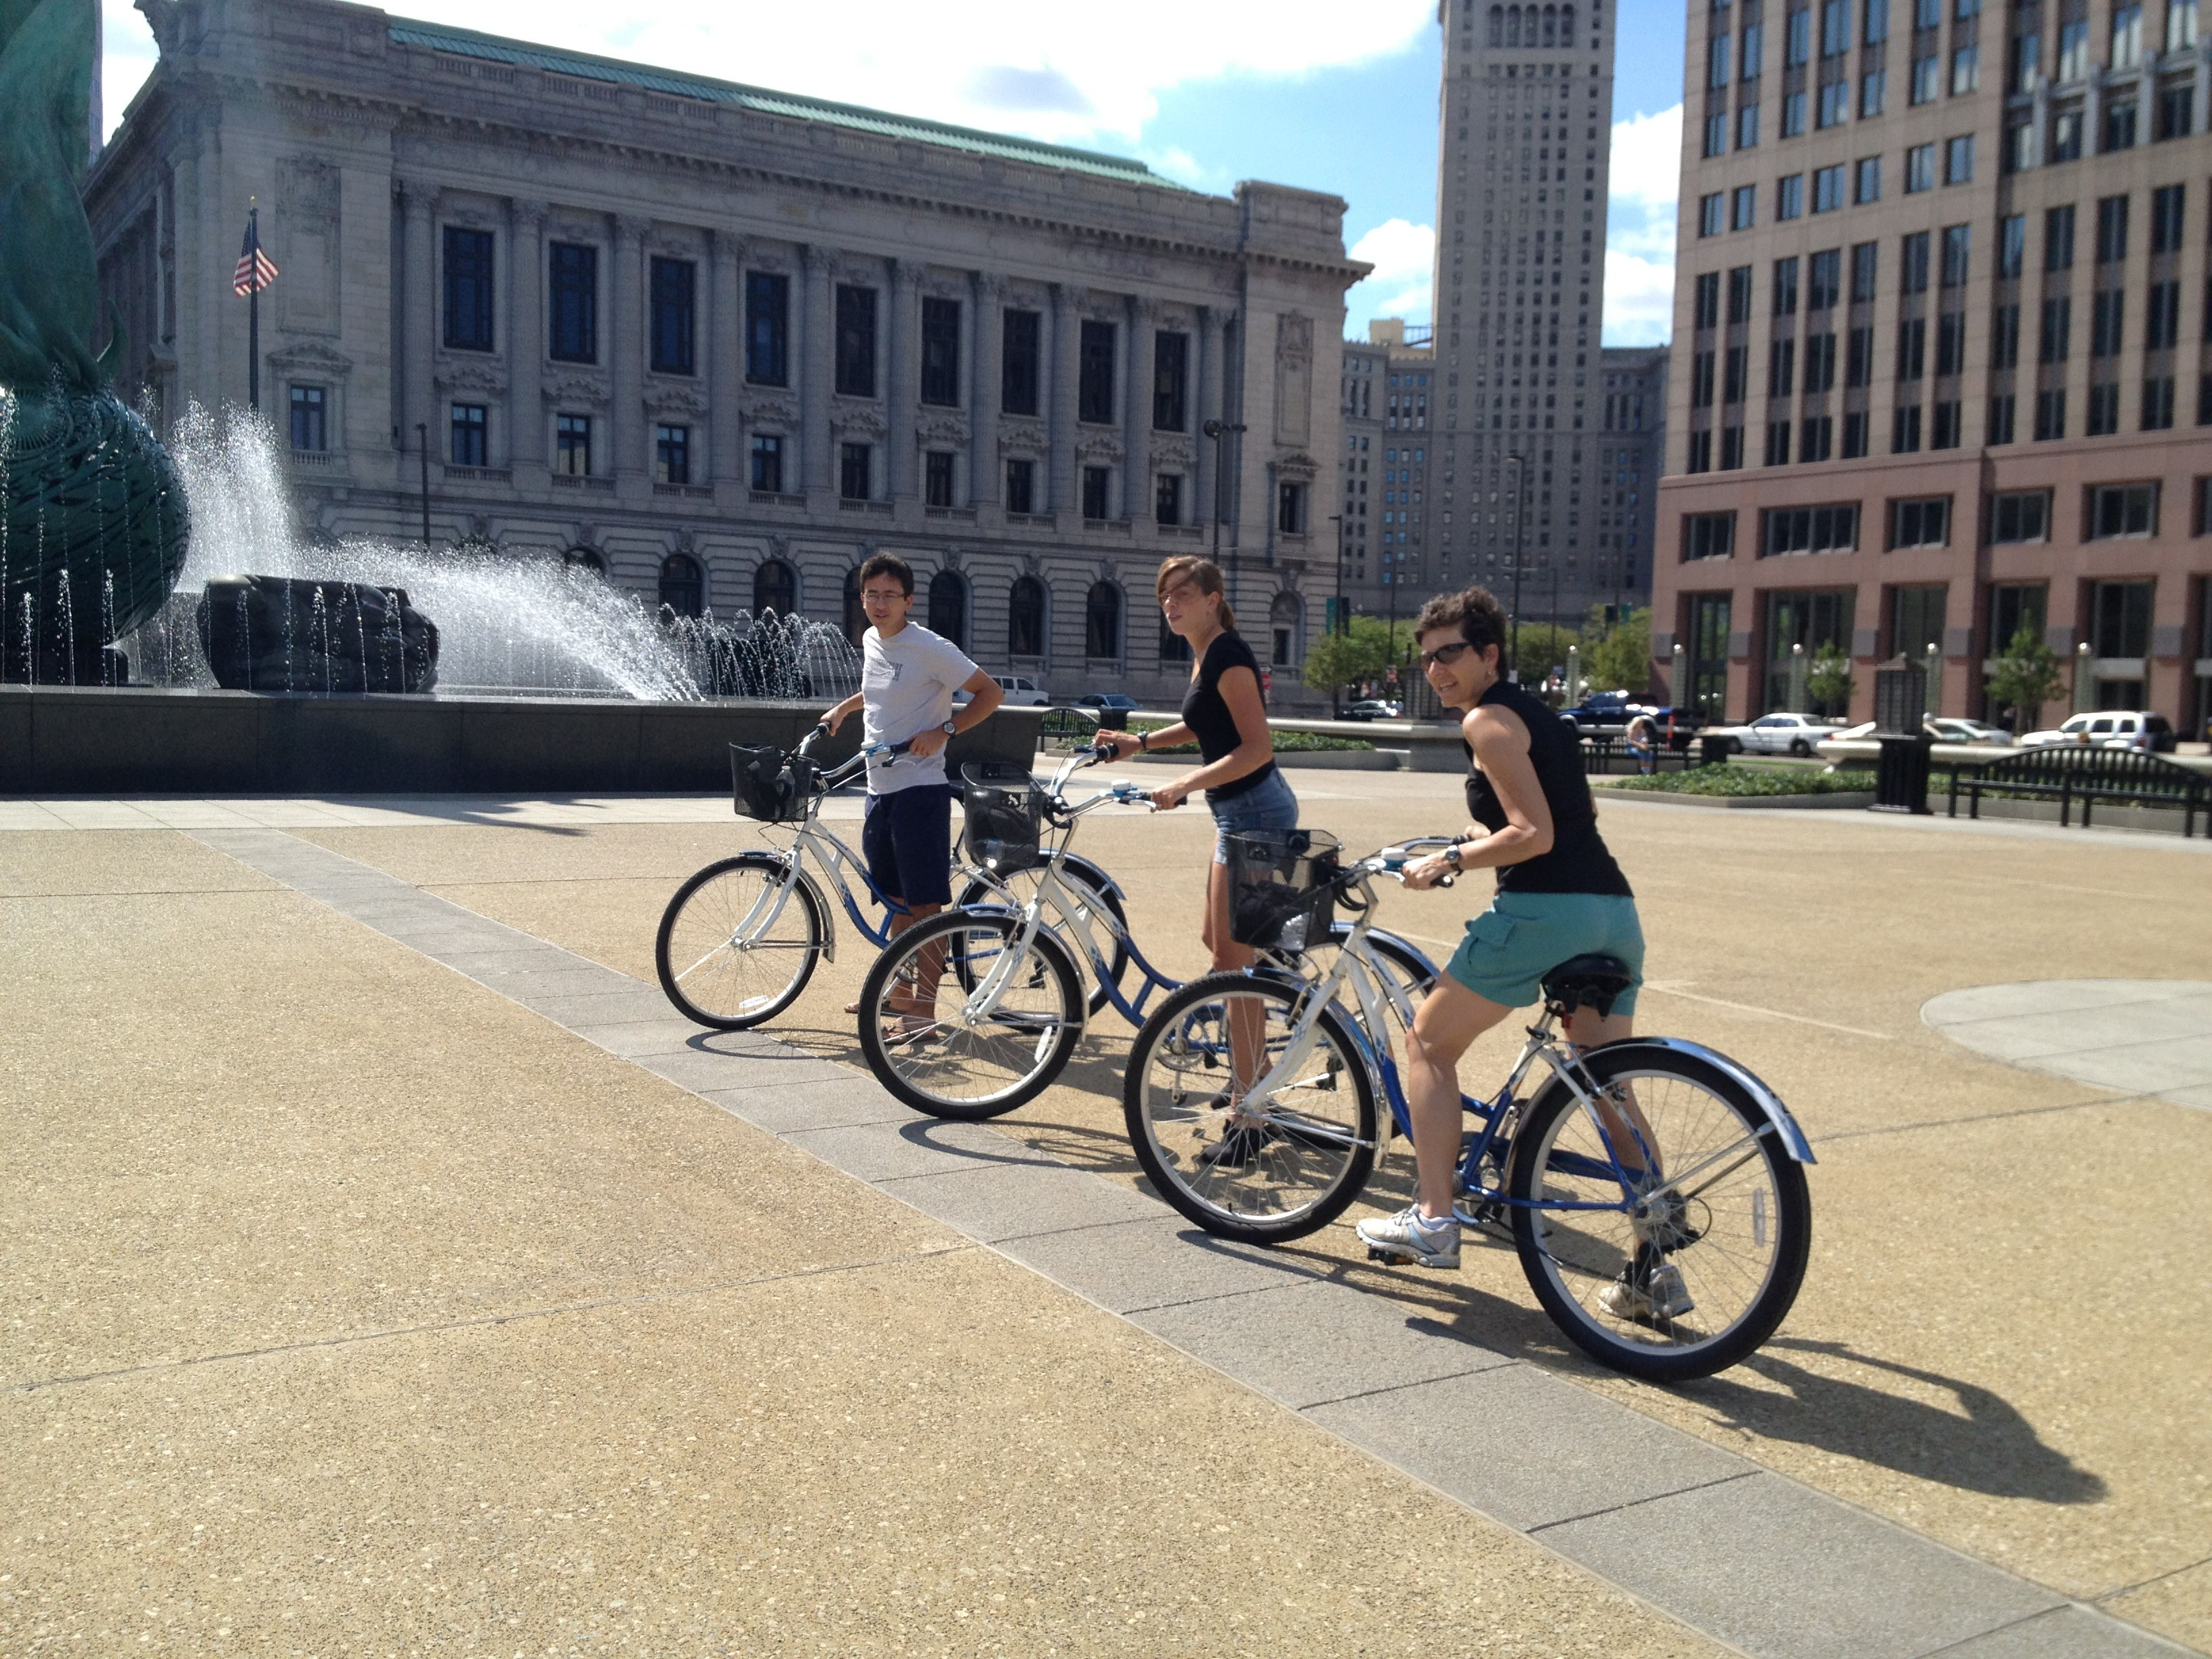 Our #Cleveland #bike tour is at a casual pace and fun. Only $40 per person. www.BikeCLE.com